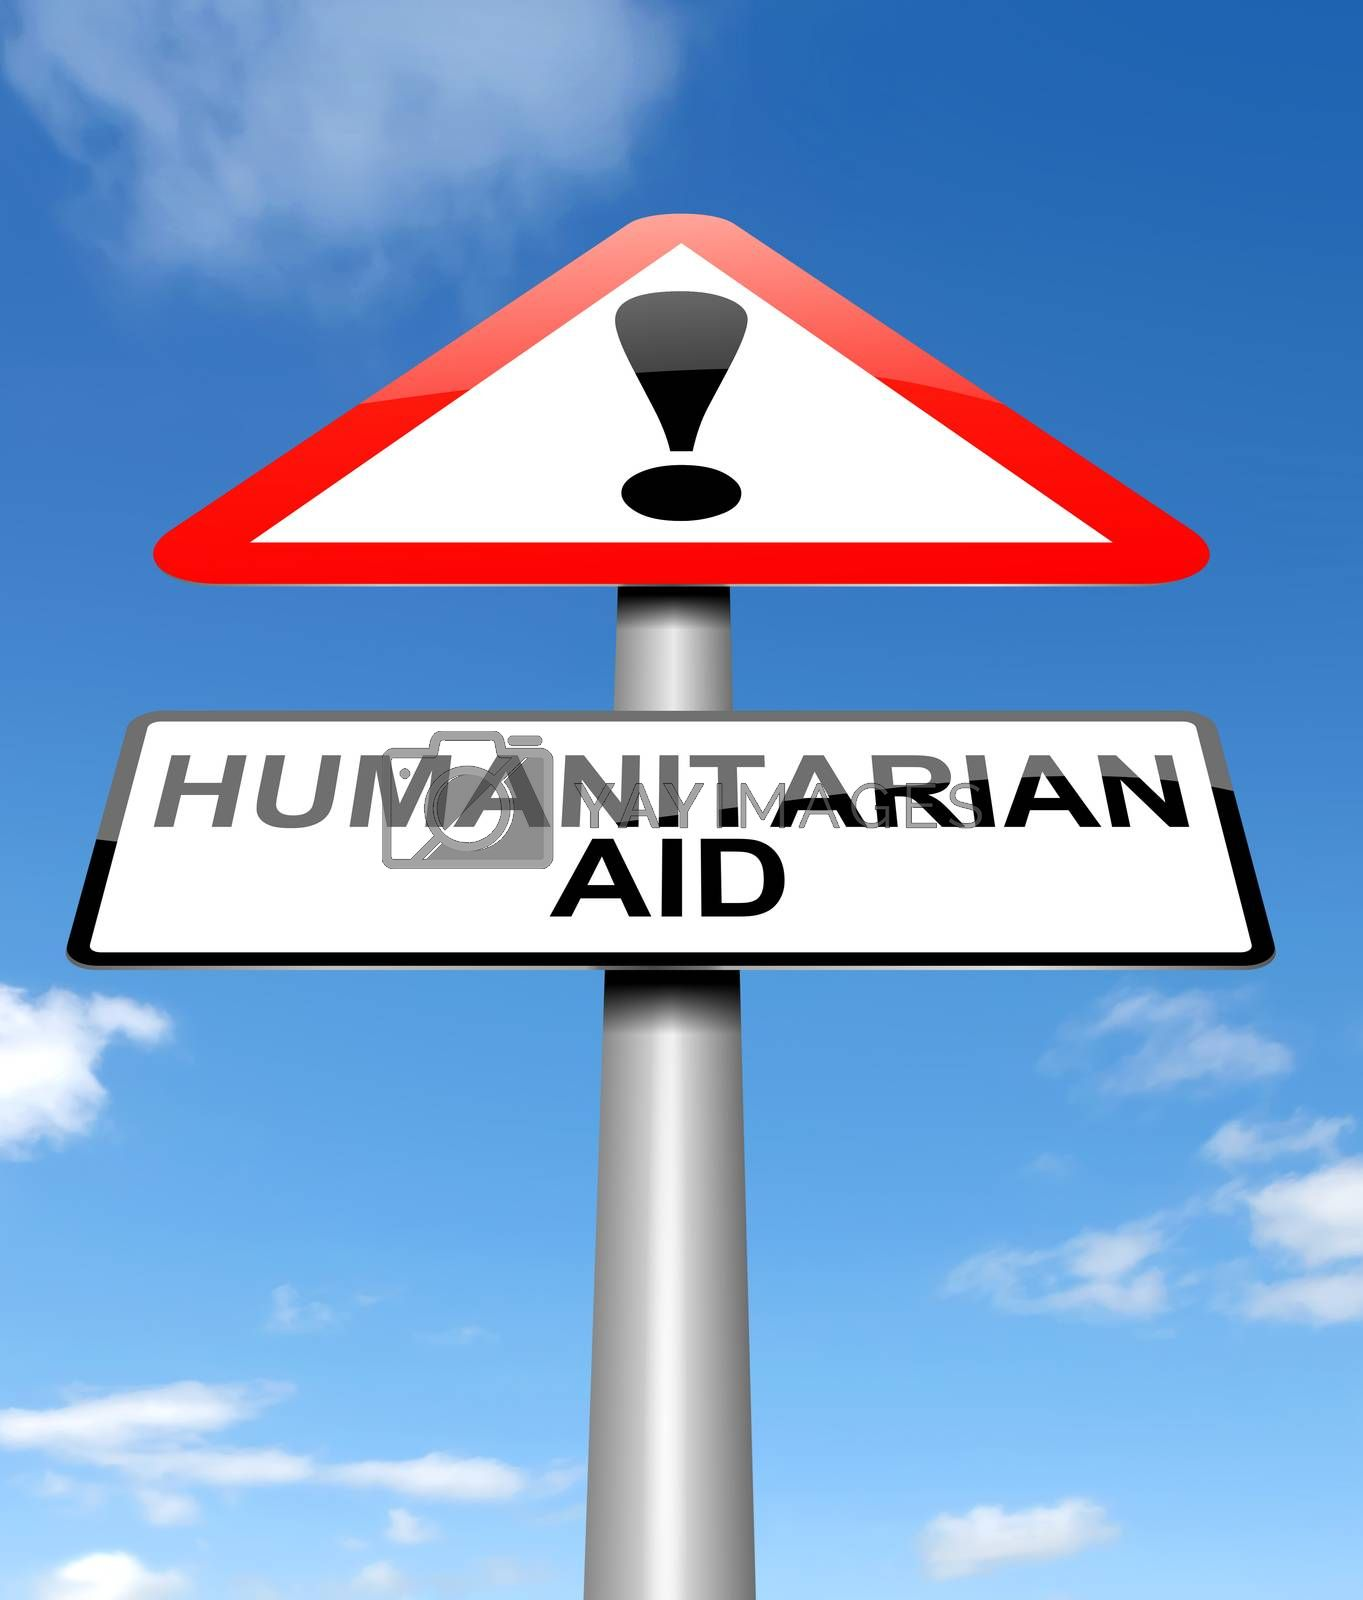 Humanitarian aid concept. by 72soul